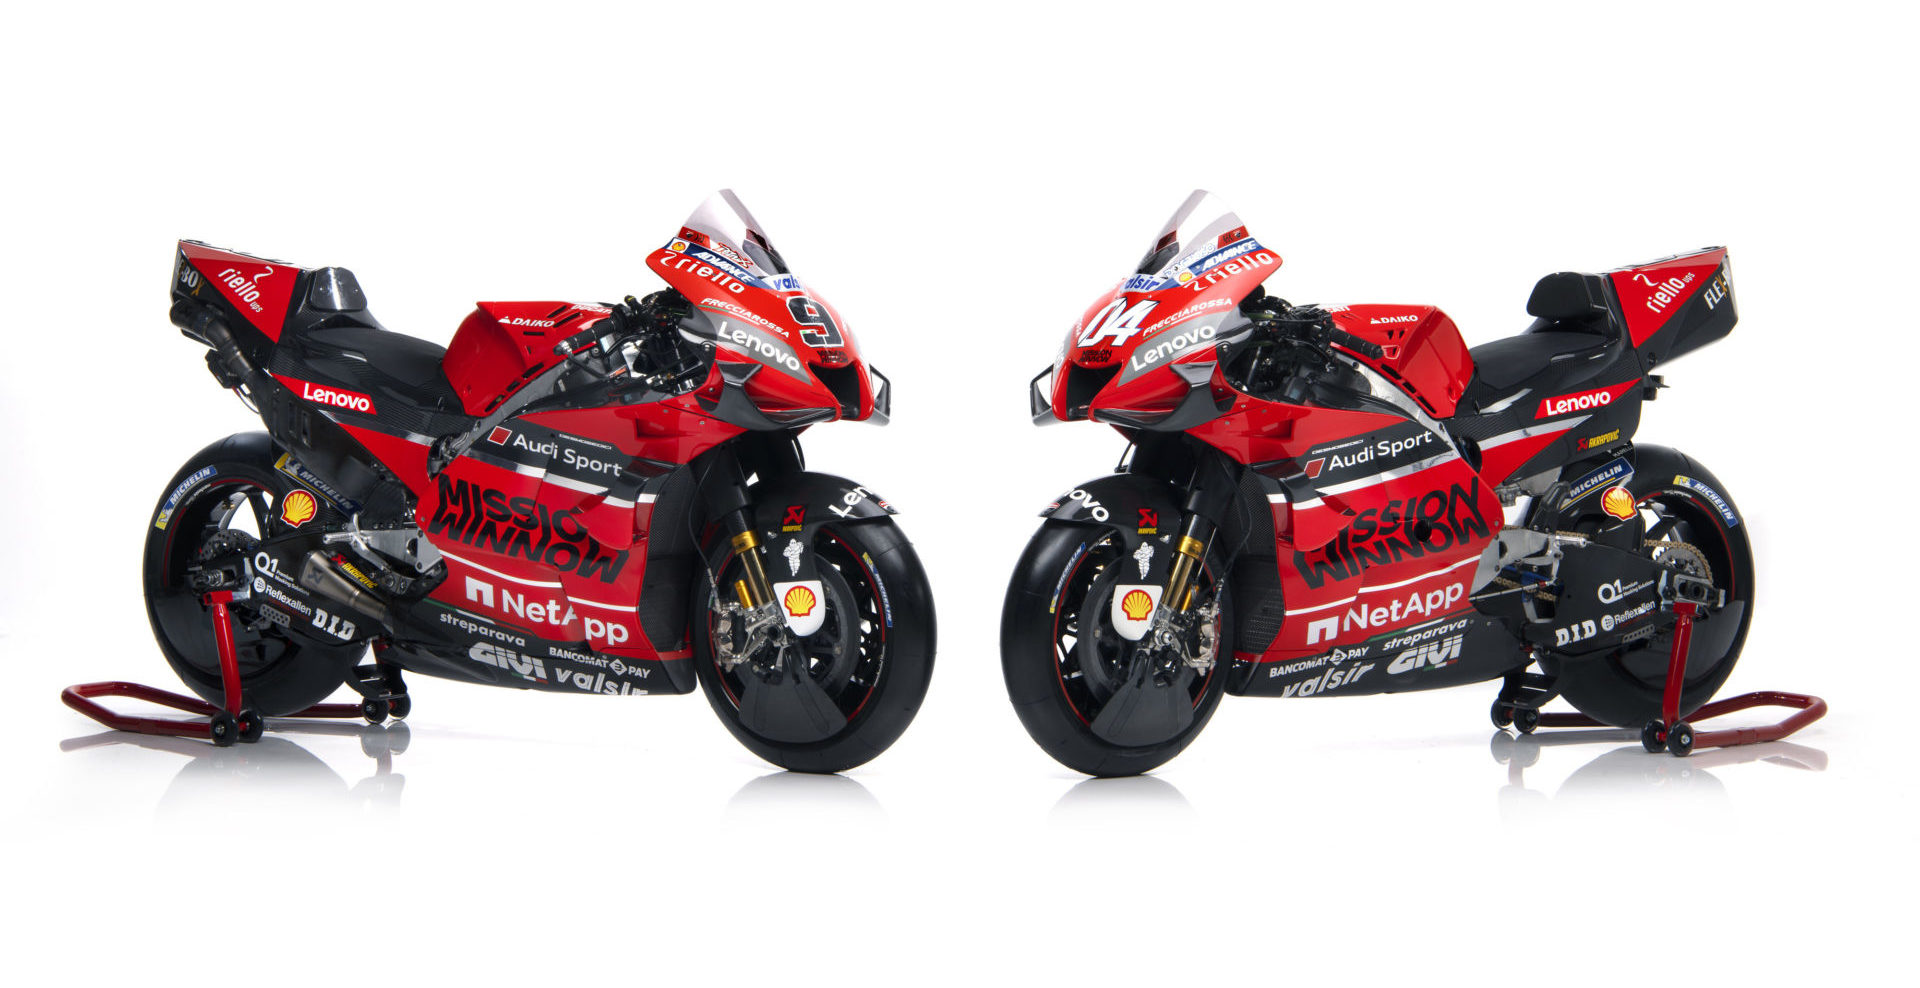 The Ducati Desmosedici GP20 MotoGP racebikes of Andrea Dovizioso and Danilo Petrucci. Photo courtesy of Ducati Corse.